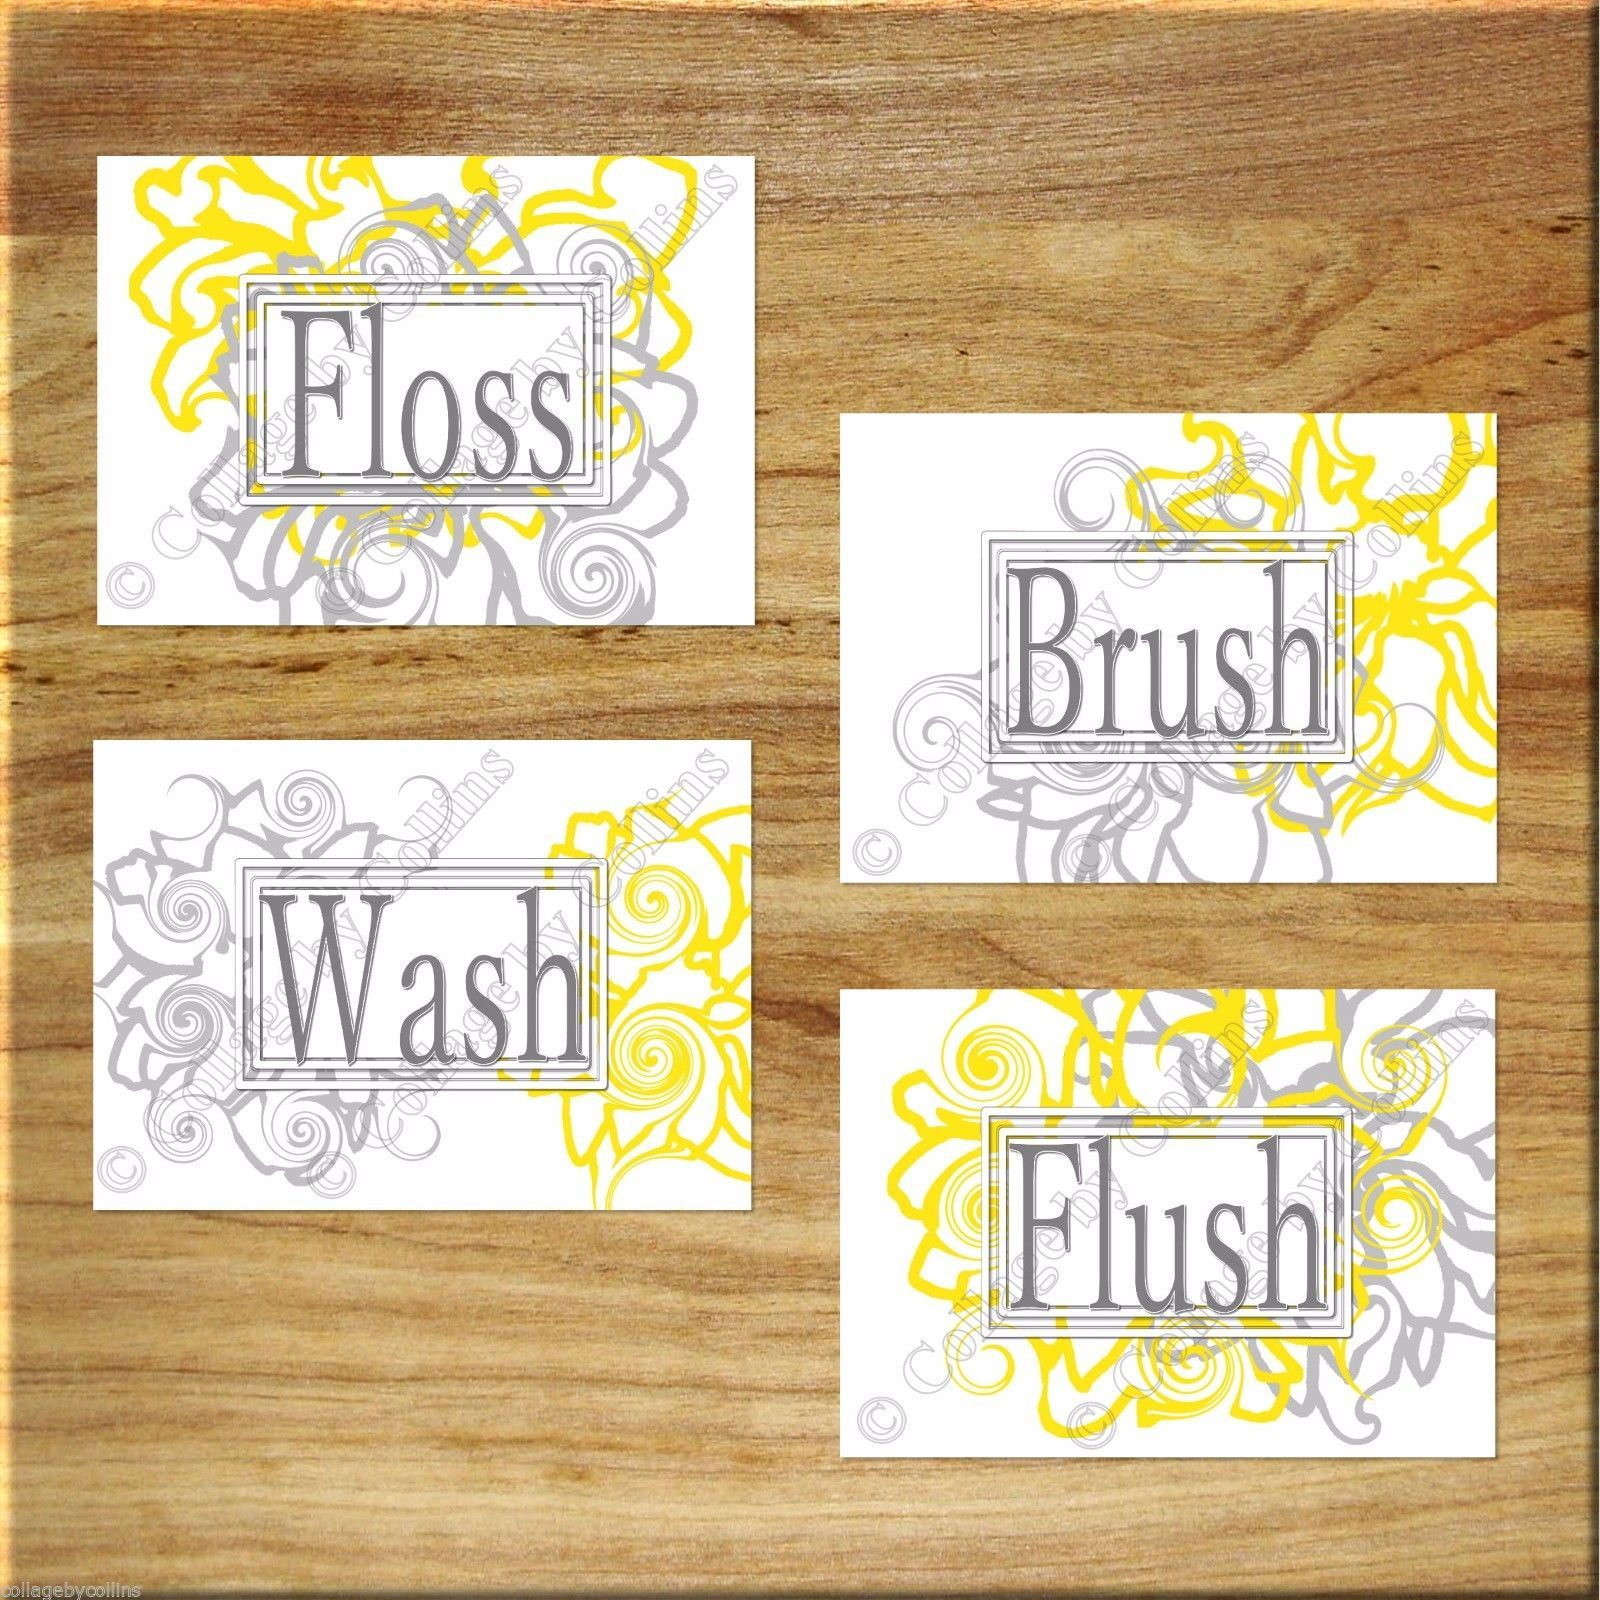 Primary image for Gray + Yellow Floral Bathroom Wall Art Prints Bath Decor Floss Wash Brush Flush